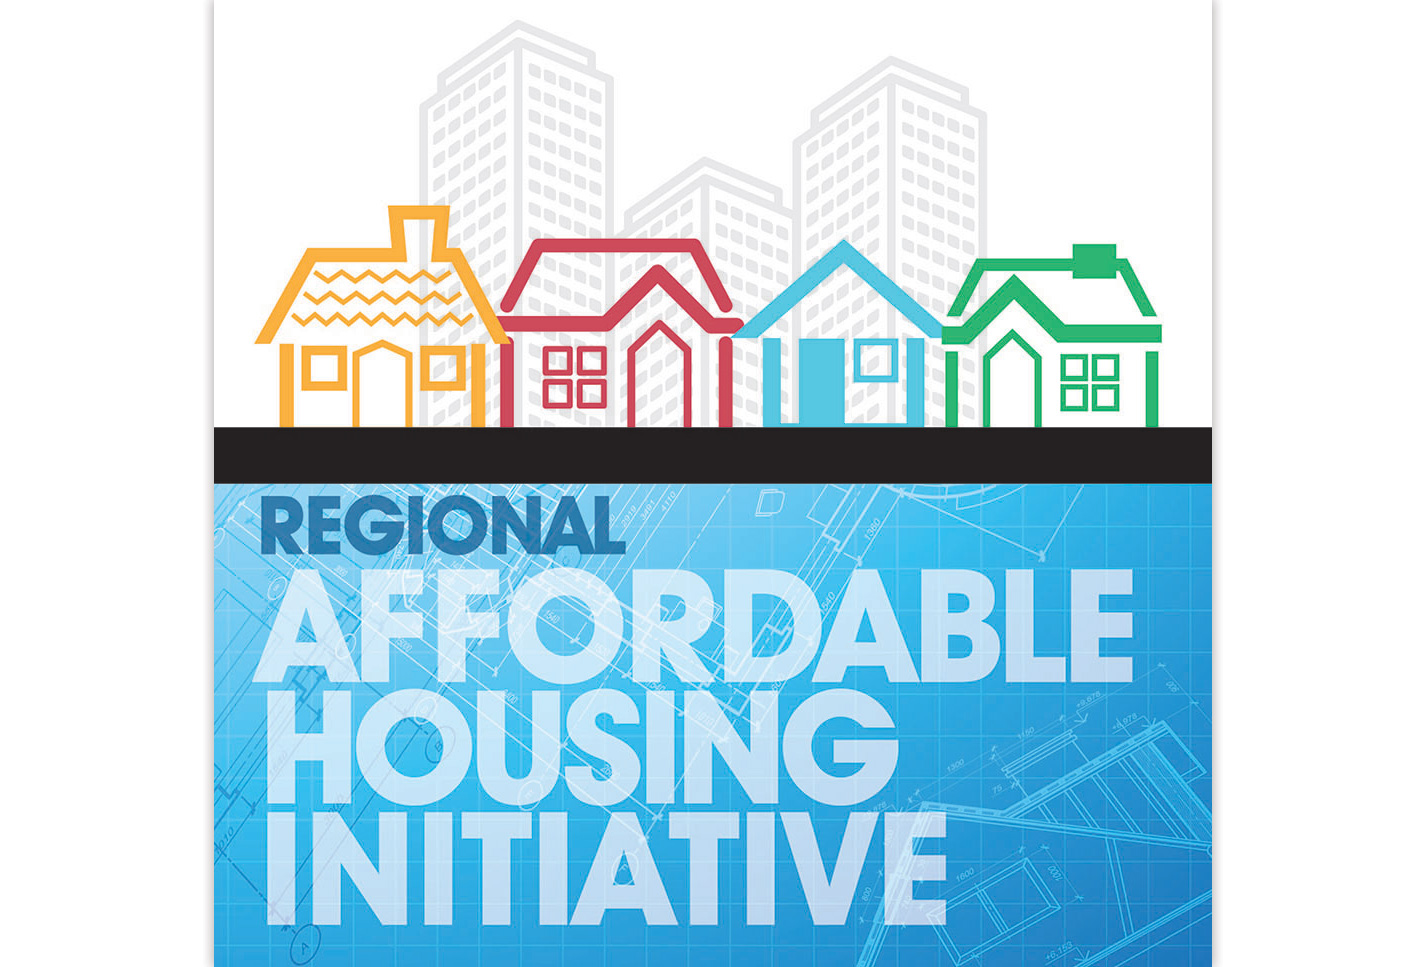 Regional Affordable Housing Initiative